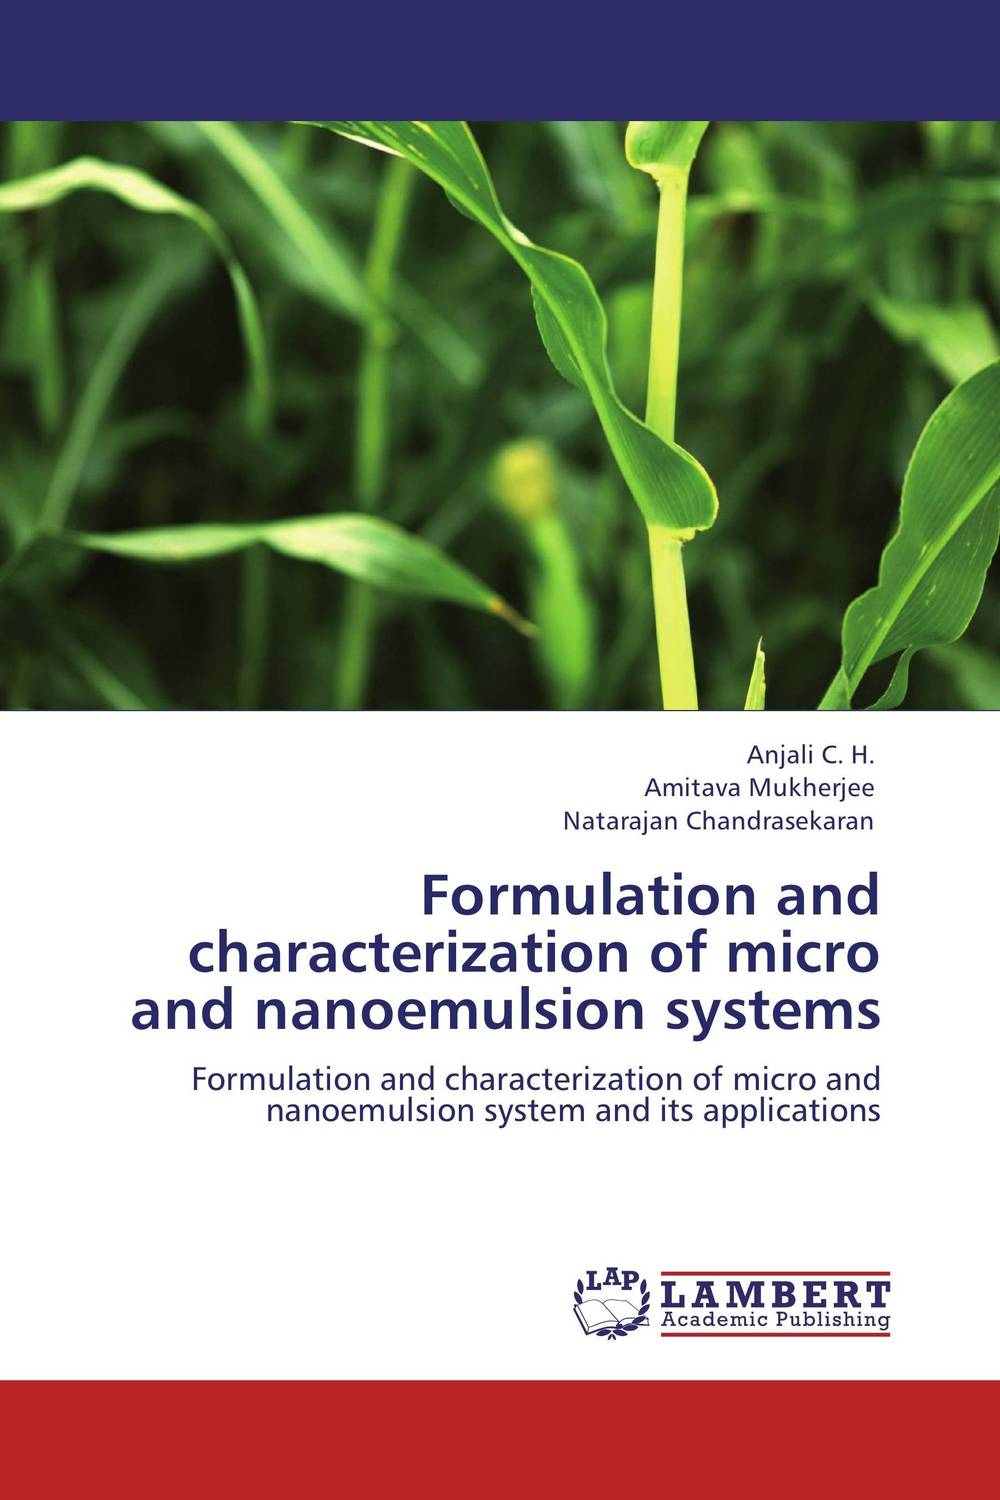 Formulation and characterization of micro and nanoemulsion systems baljit singh polymeric pesticide delivery systems to control environmental hazards